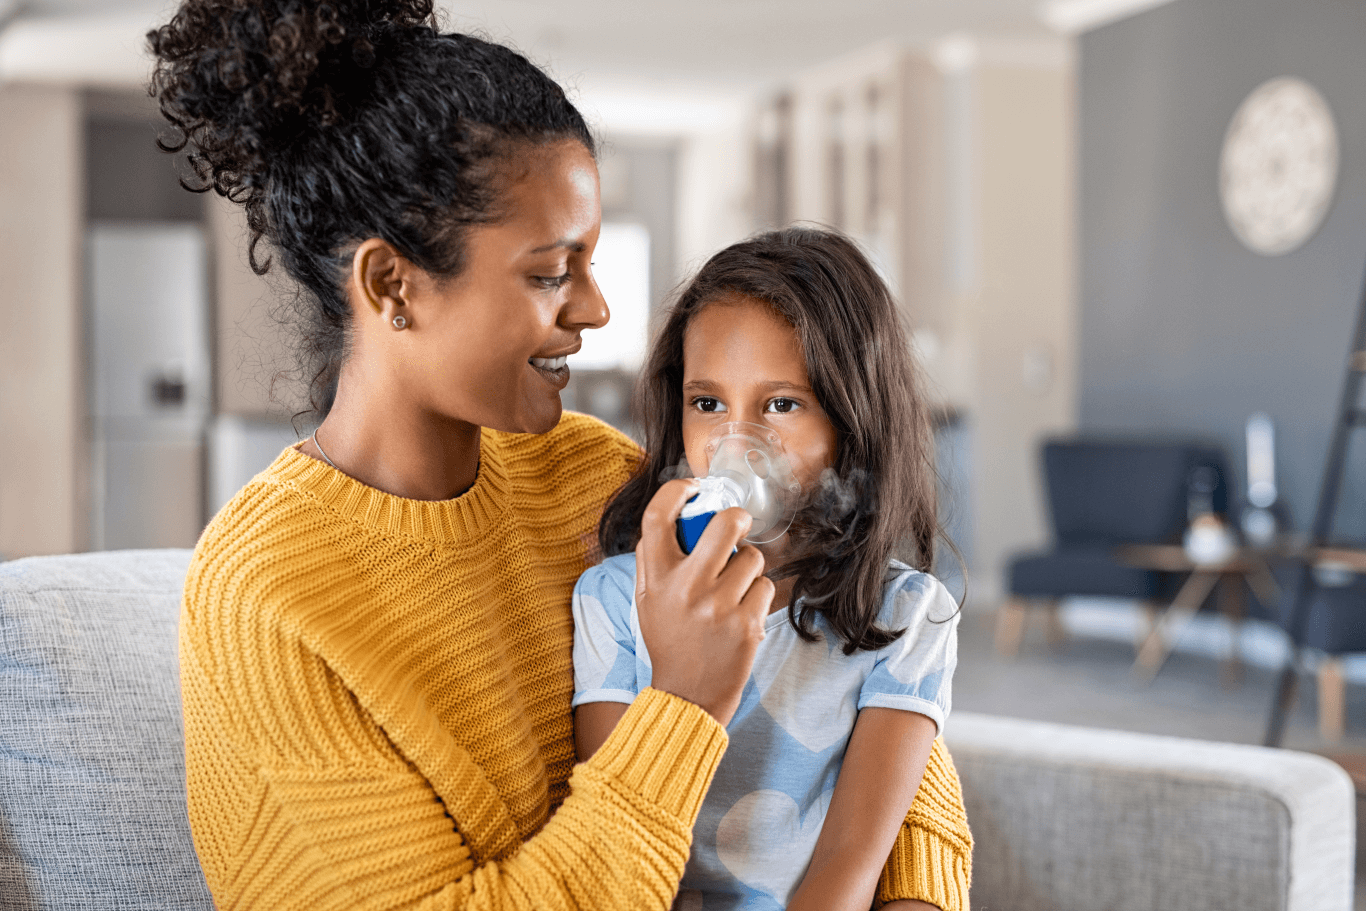 Mother helping her daughter use her nebulizer